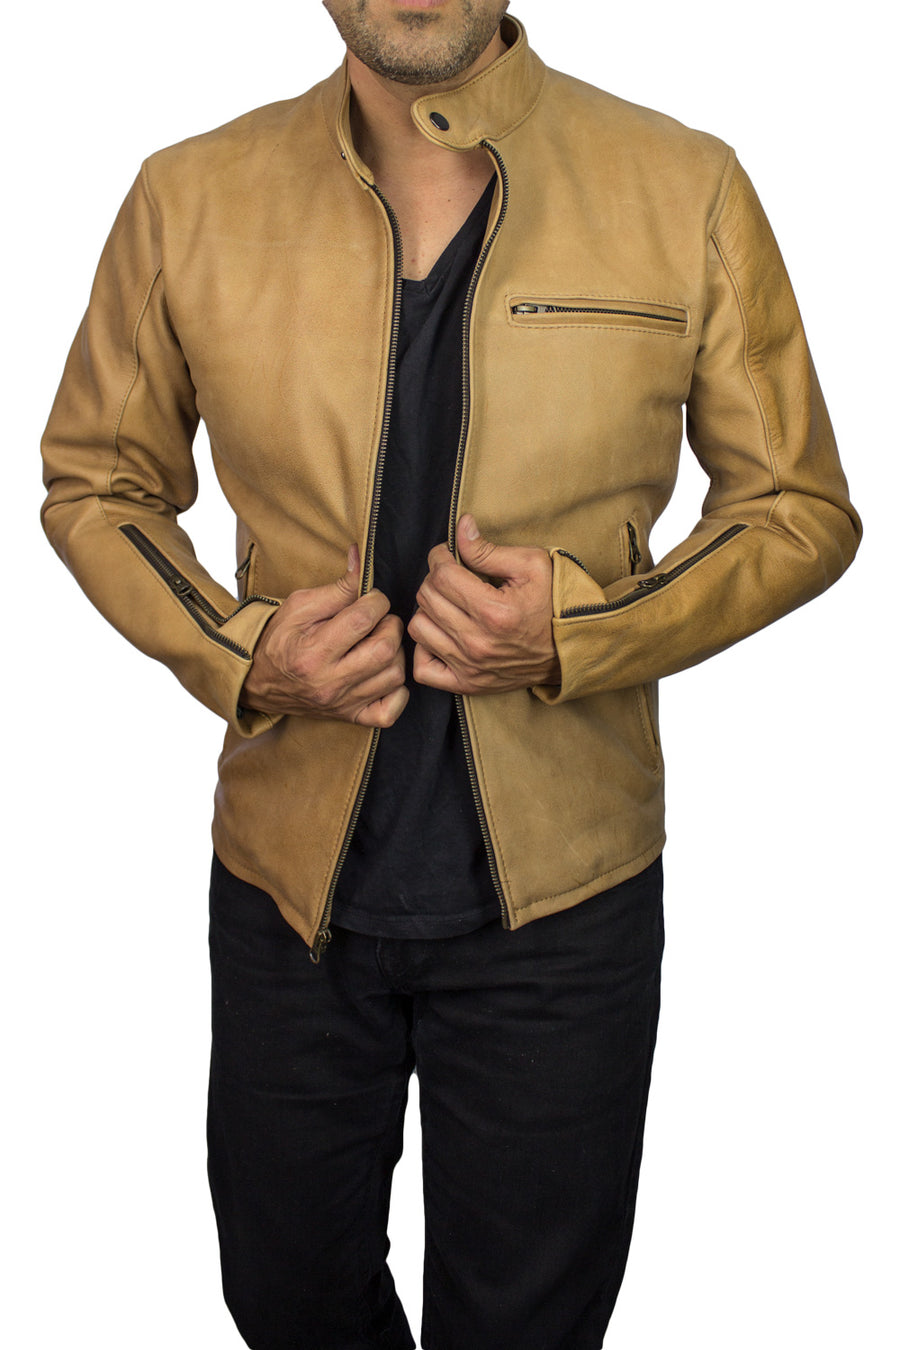 R79 Leather Jacket Tan Vintage Fit - Motorcycle Cafe Racer - PDCollection Leatherwear - Online Shop